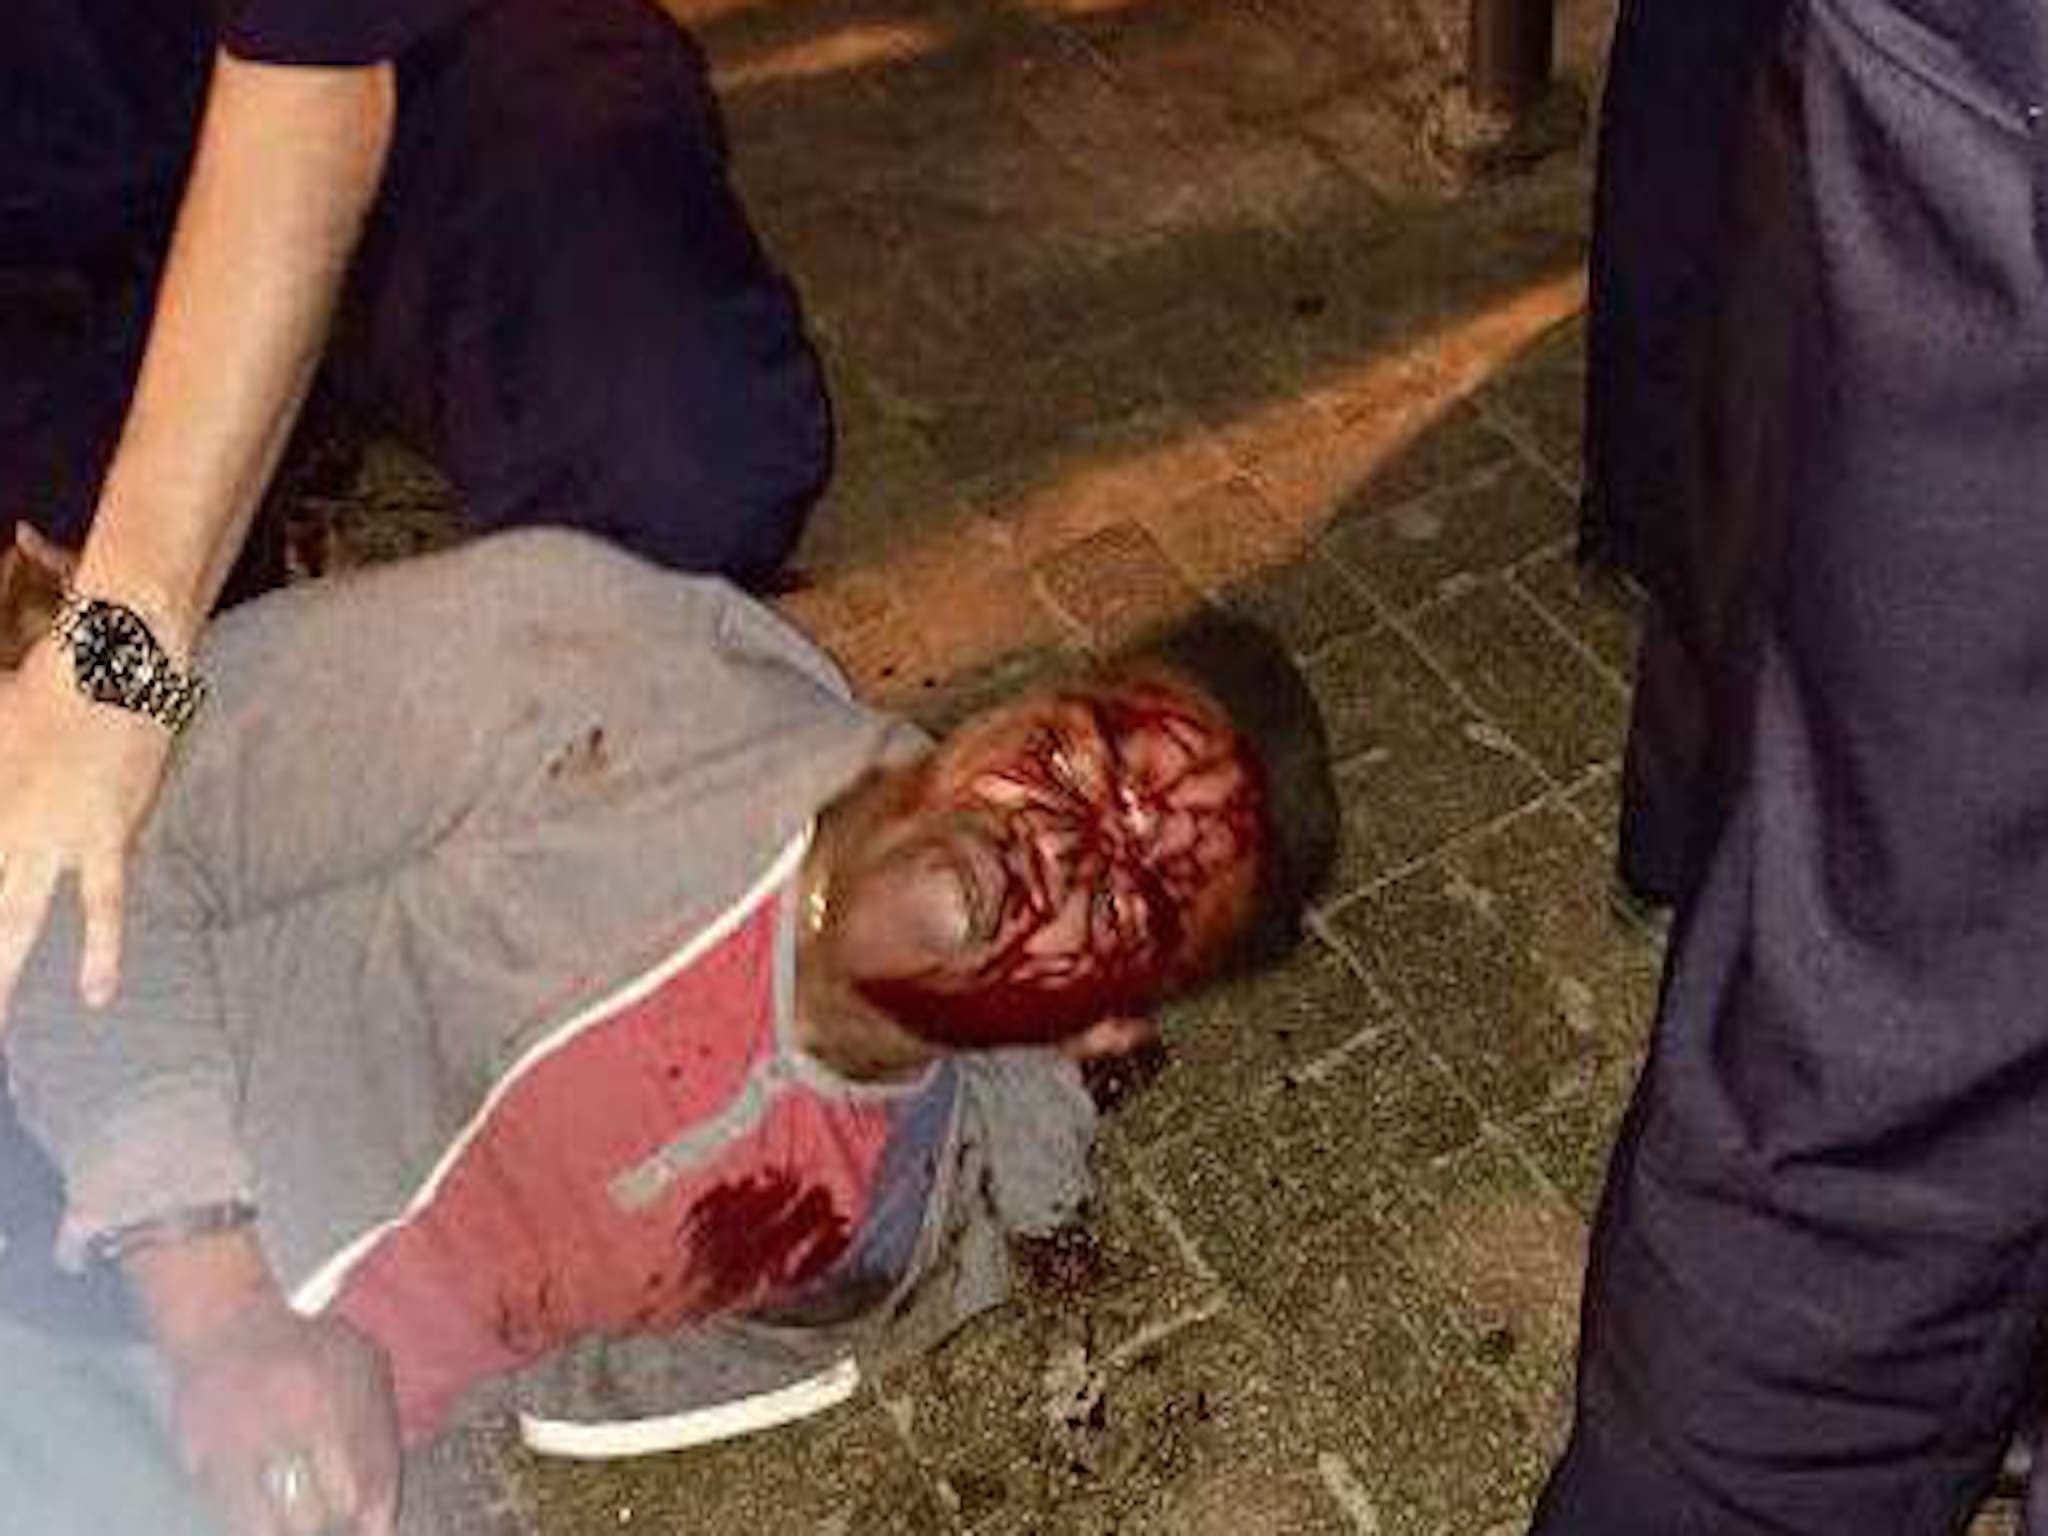 University of Virginia: Governor launches investigation into police treatment of black student